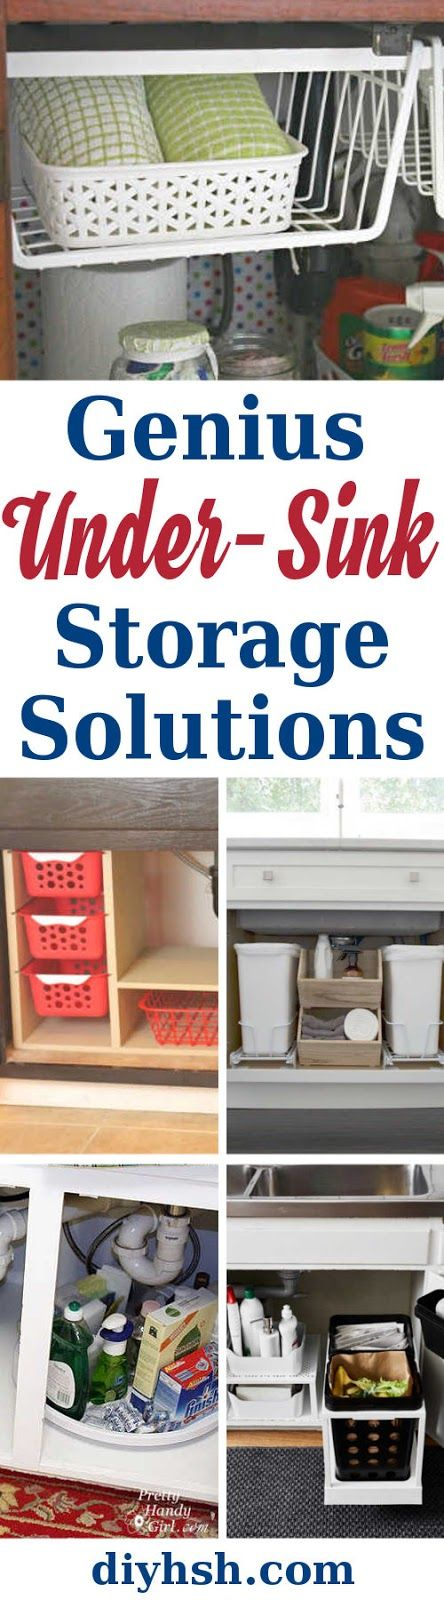 5 Genius Under-Sink Storage Solutions. #DIY #KitchenStorage  #StorageSolutions